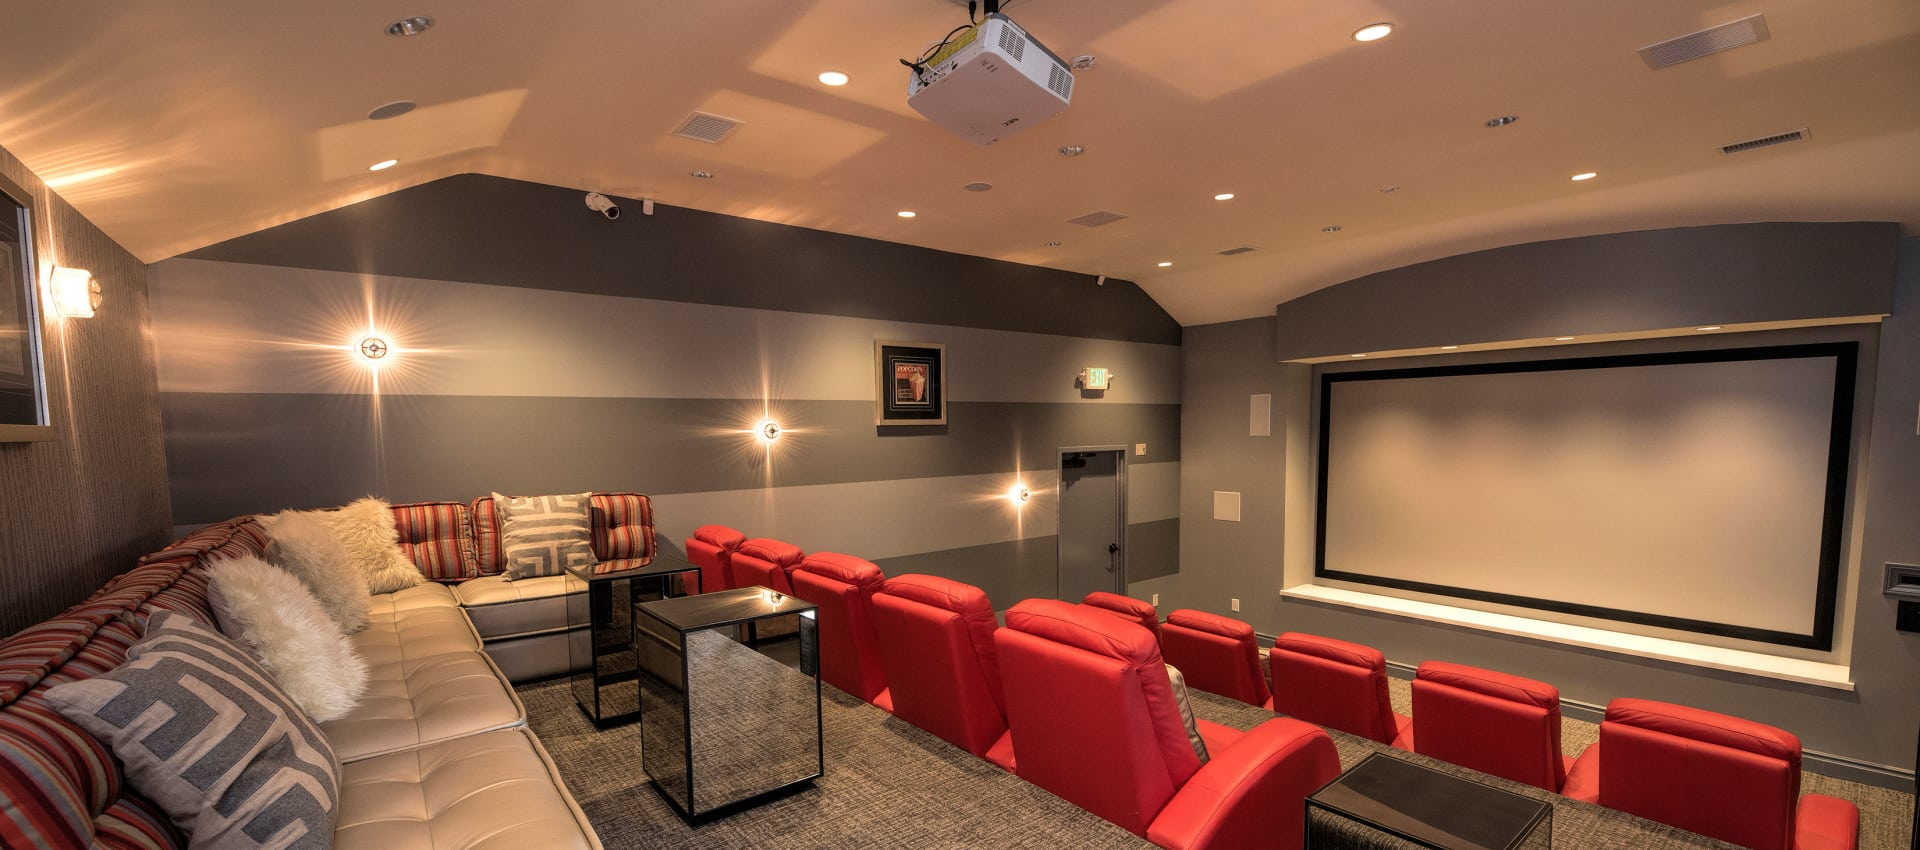 Movie Room at Shadow Ridge Apartment Homes in Simi Valley, California